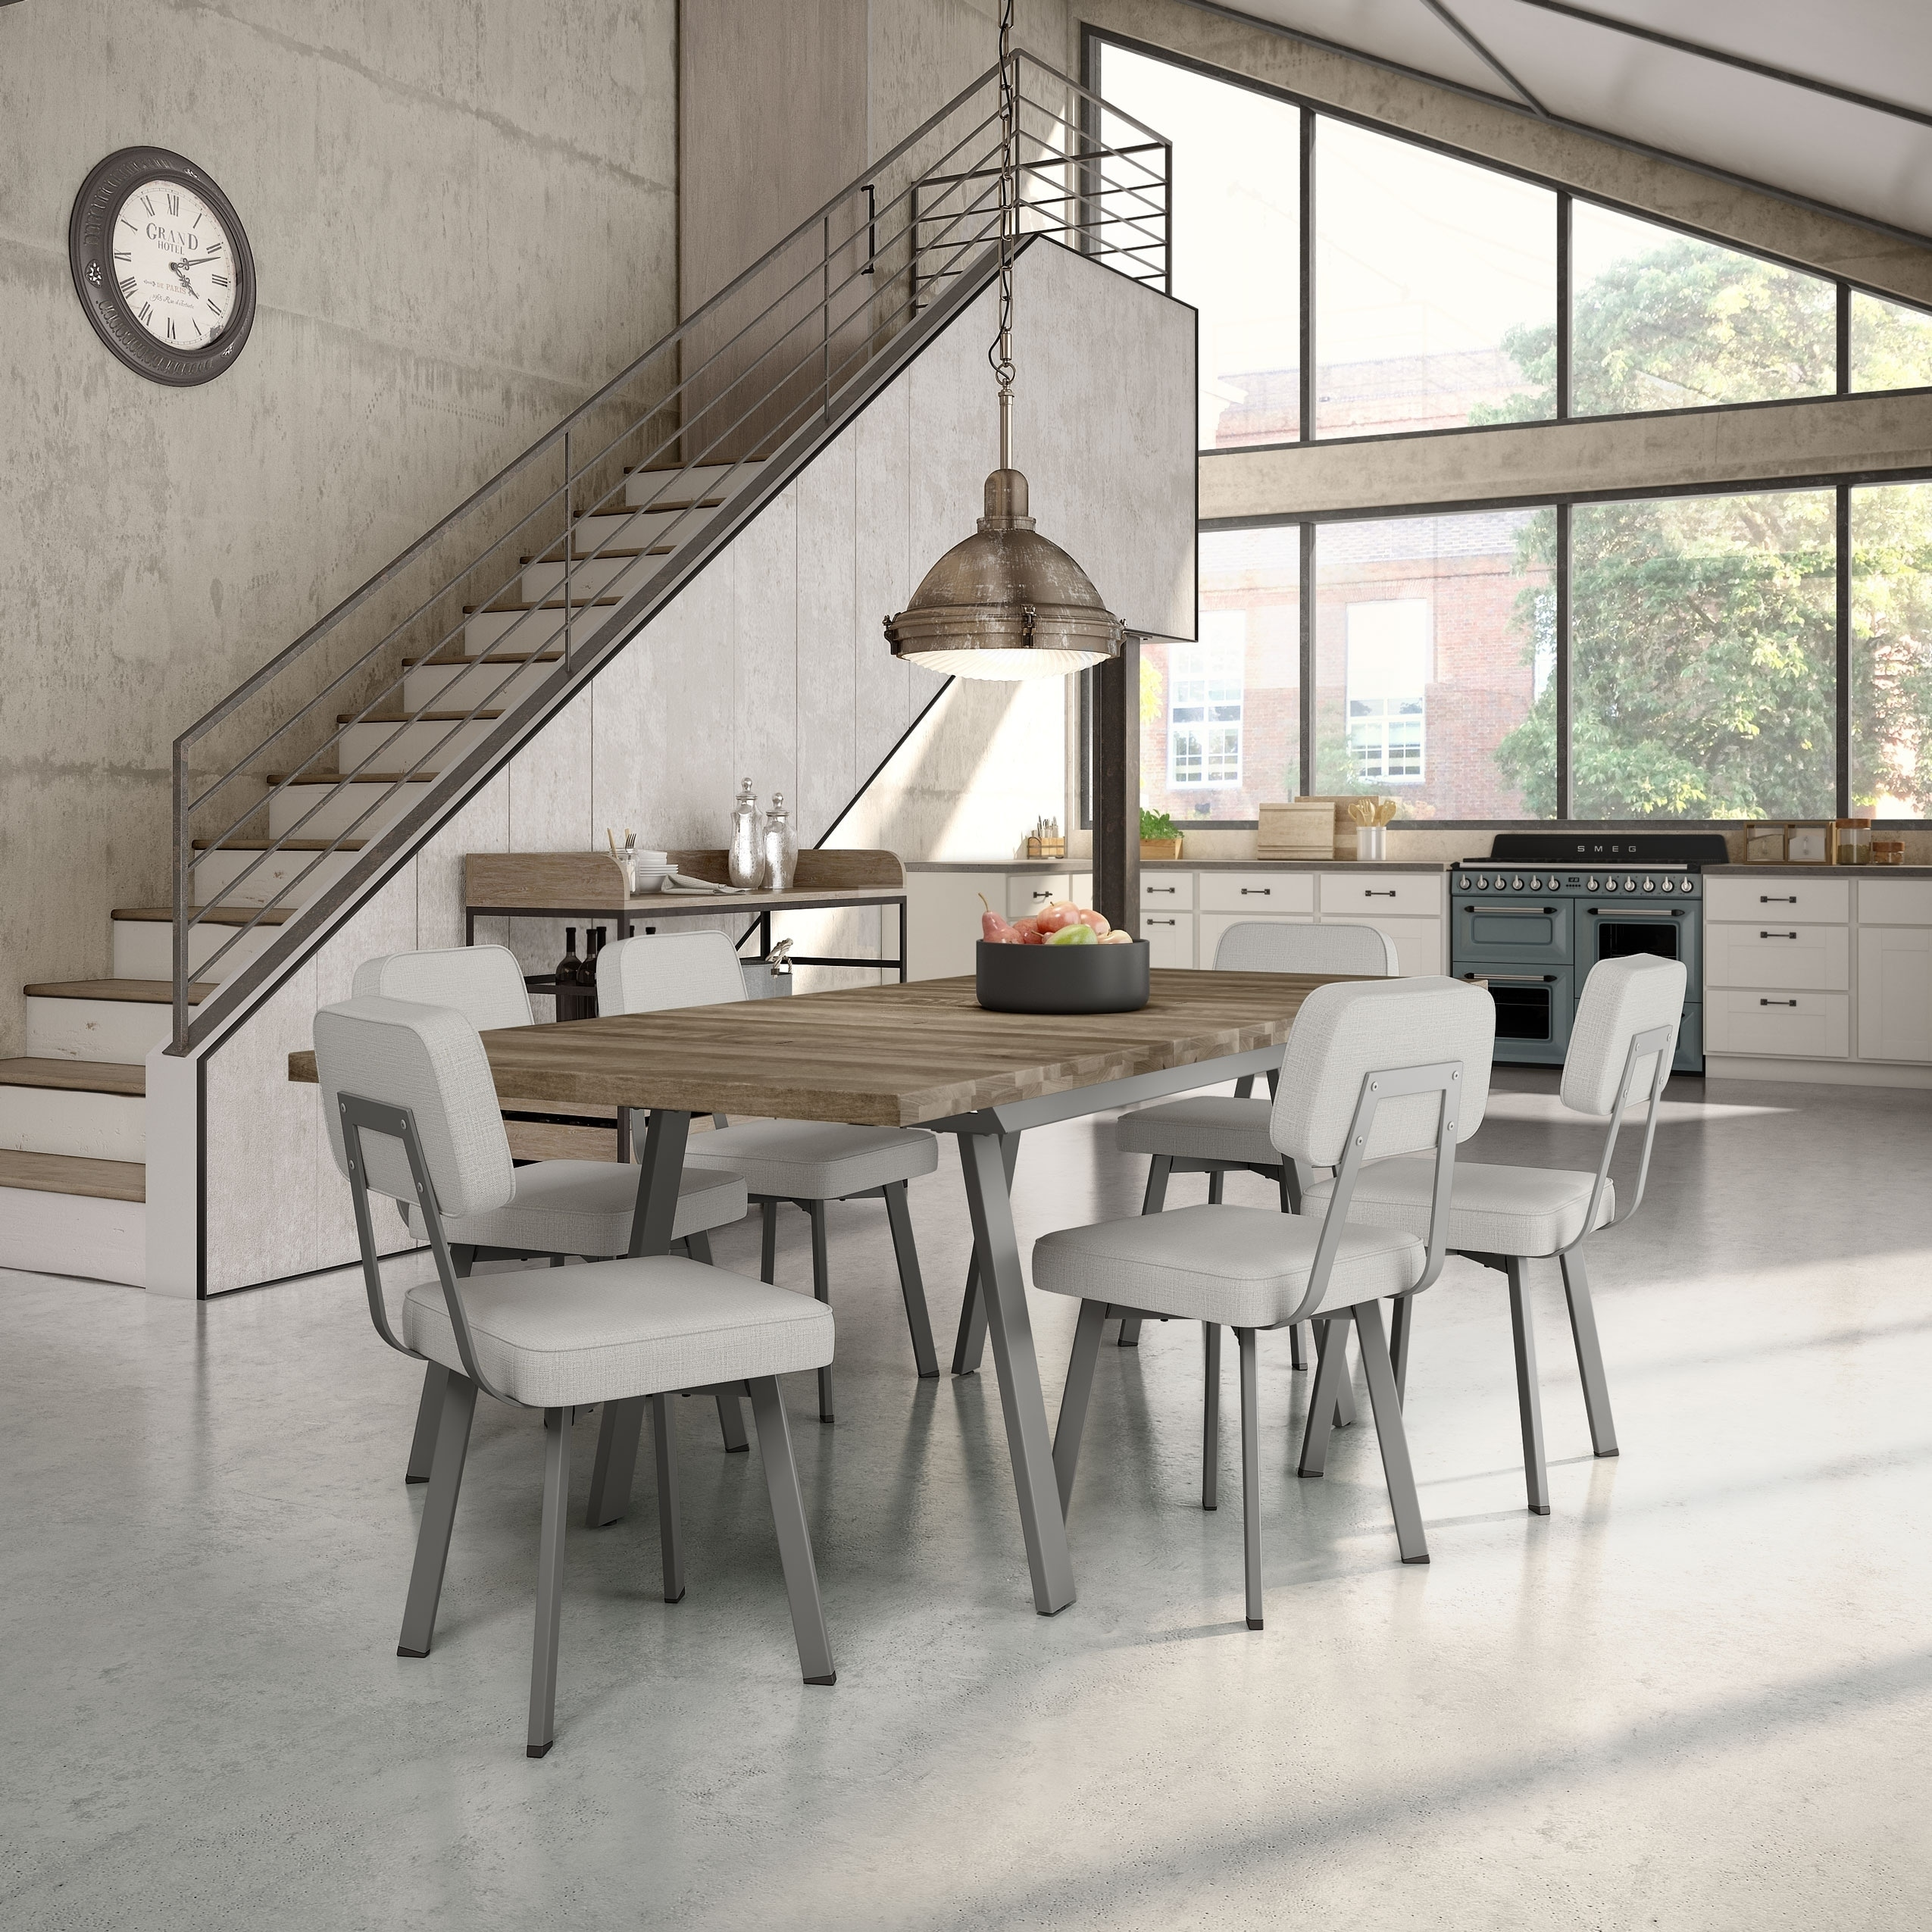 Shop Carbon Loft Elion Metal Chairs And Kane Table Dining